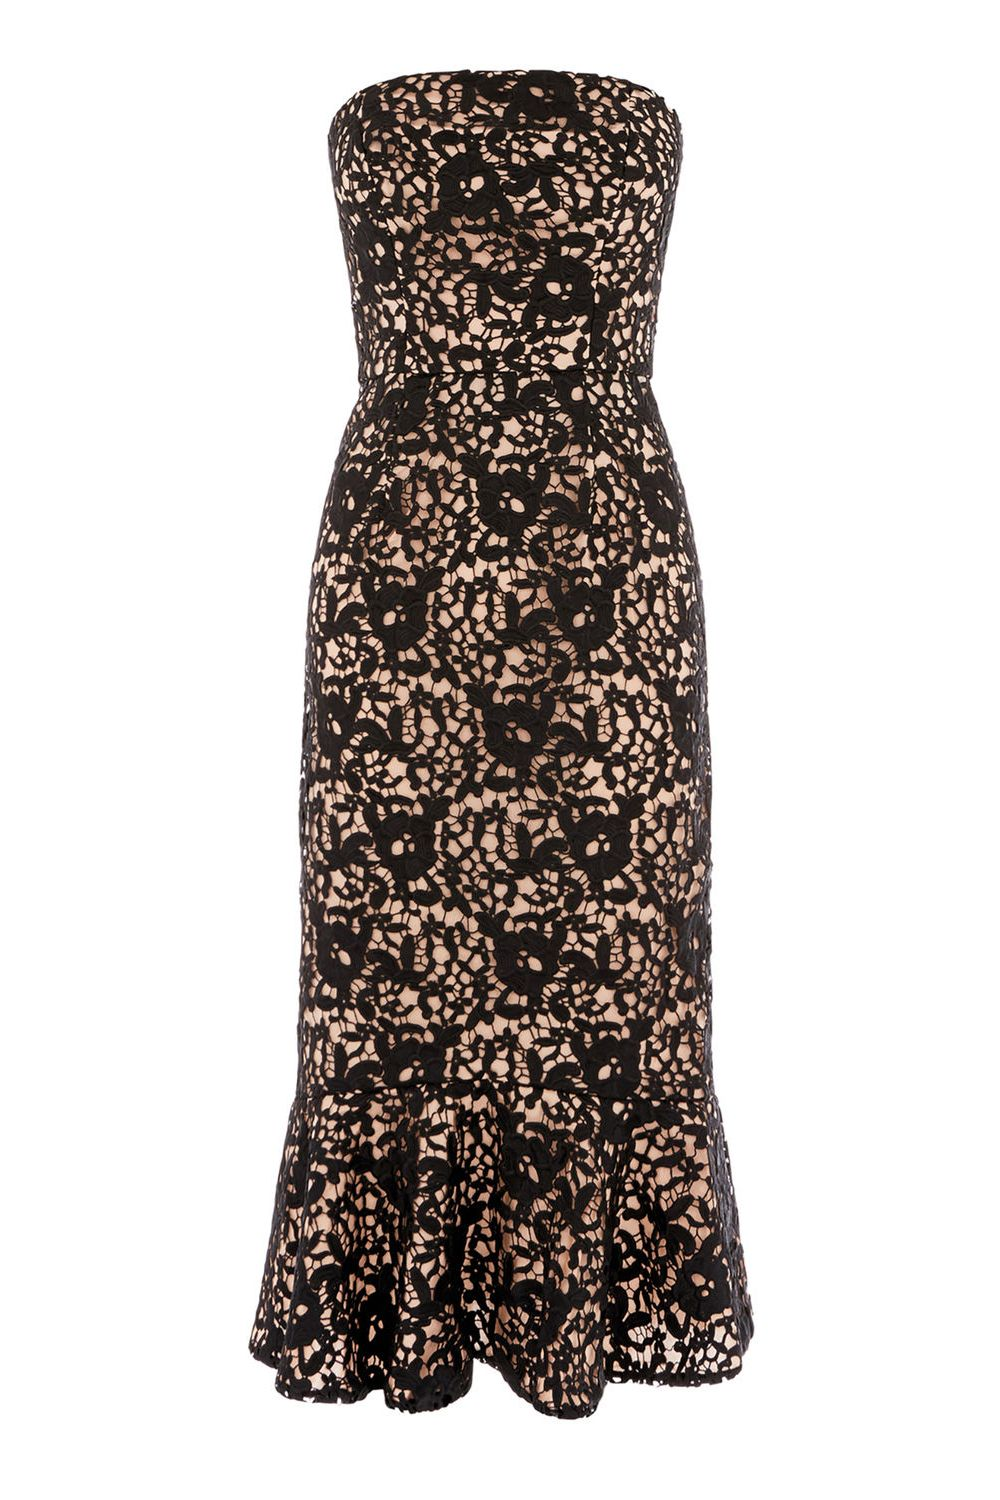 Warehouse Strapless Premium Lace Dress, Black